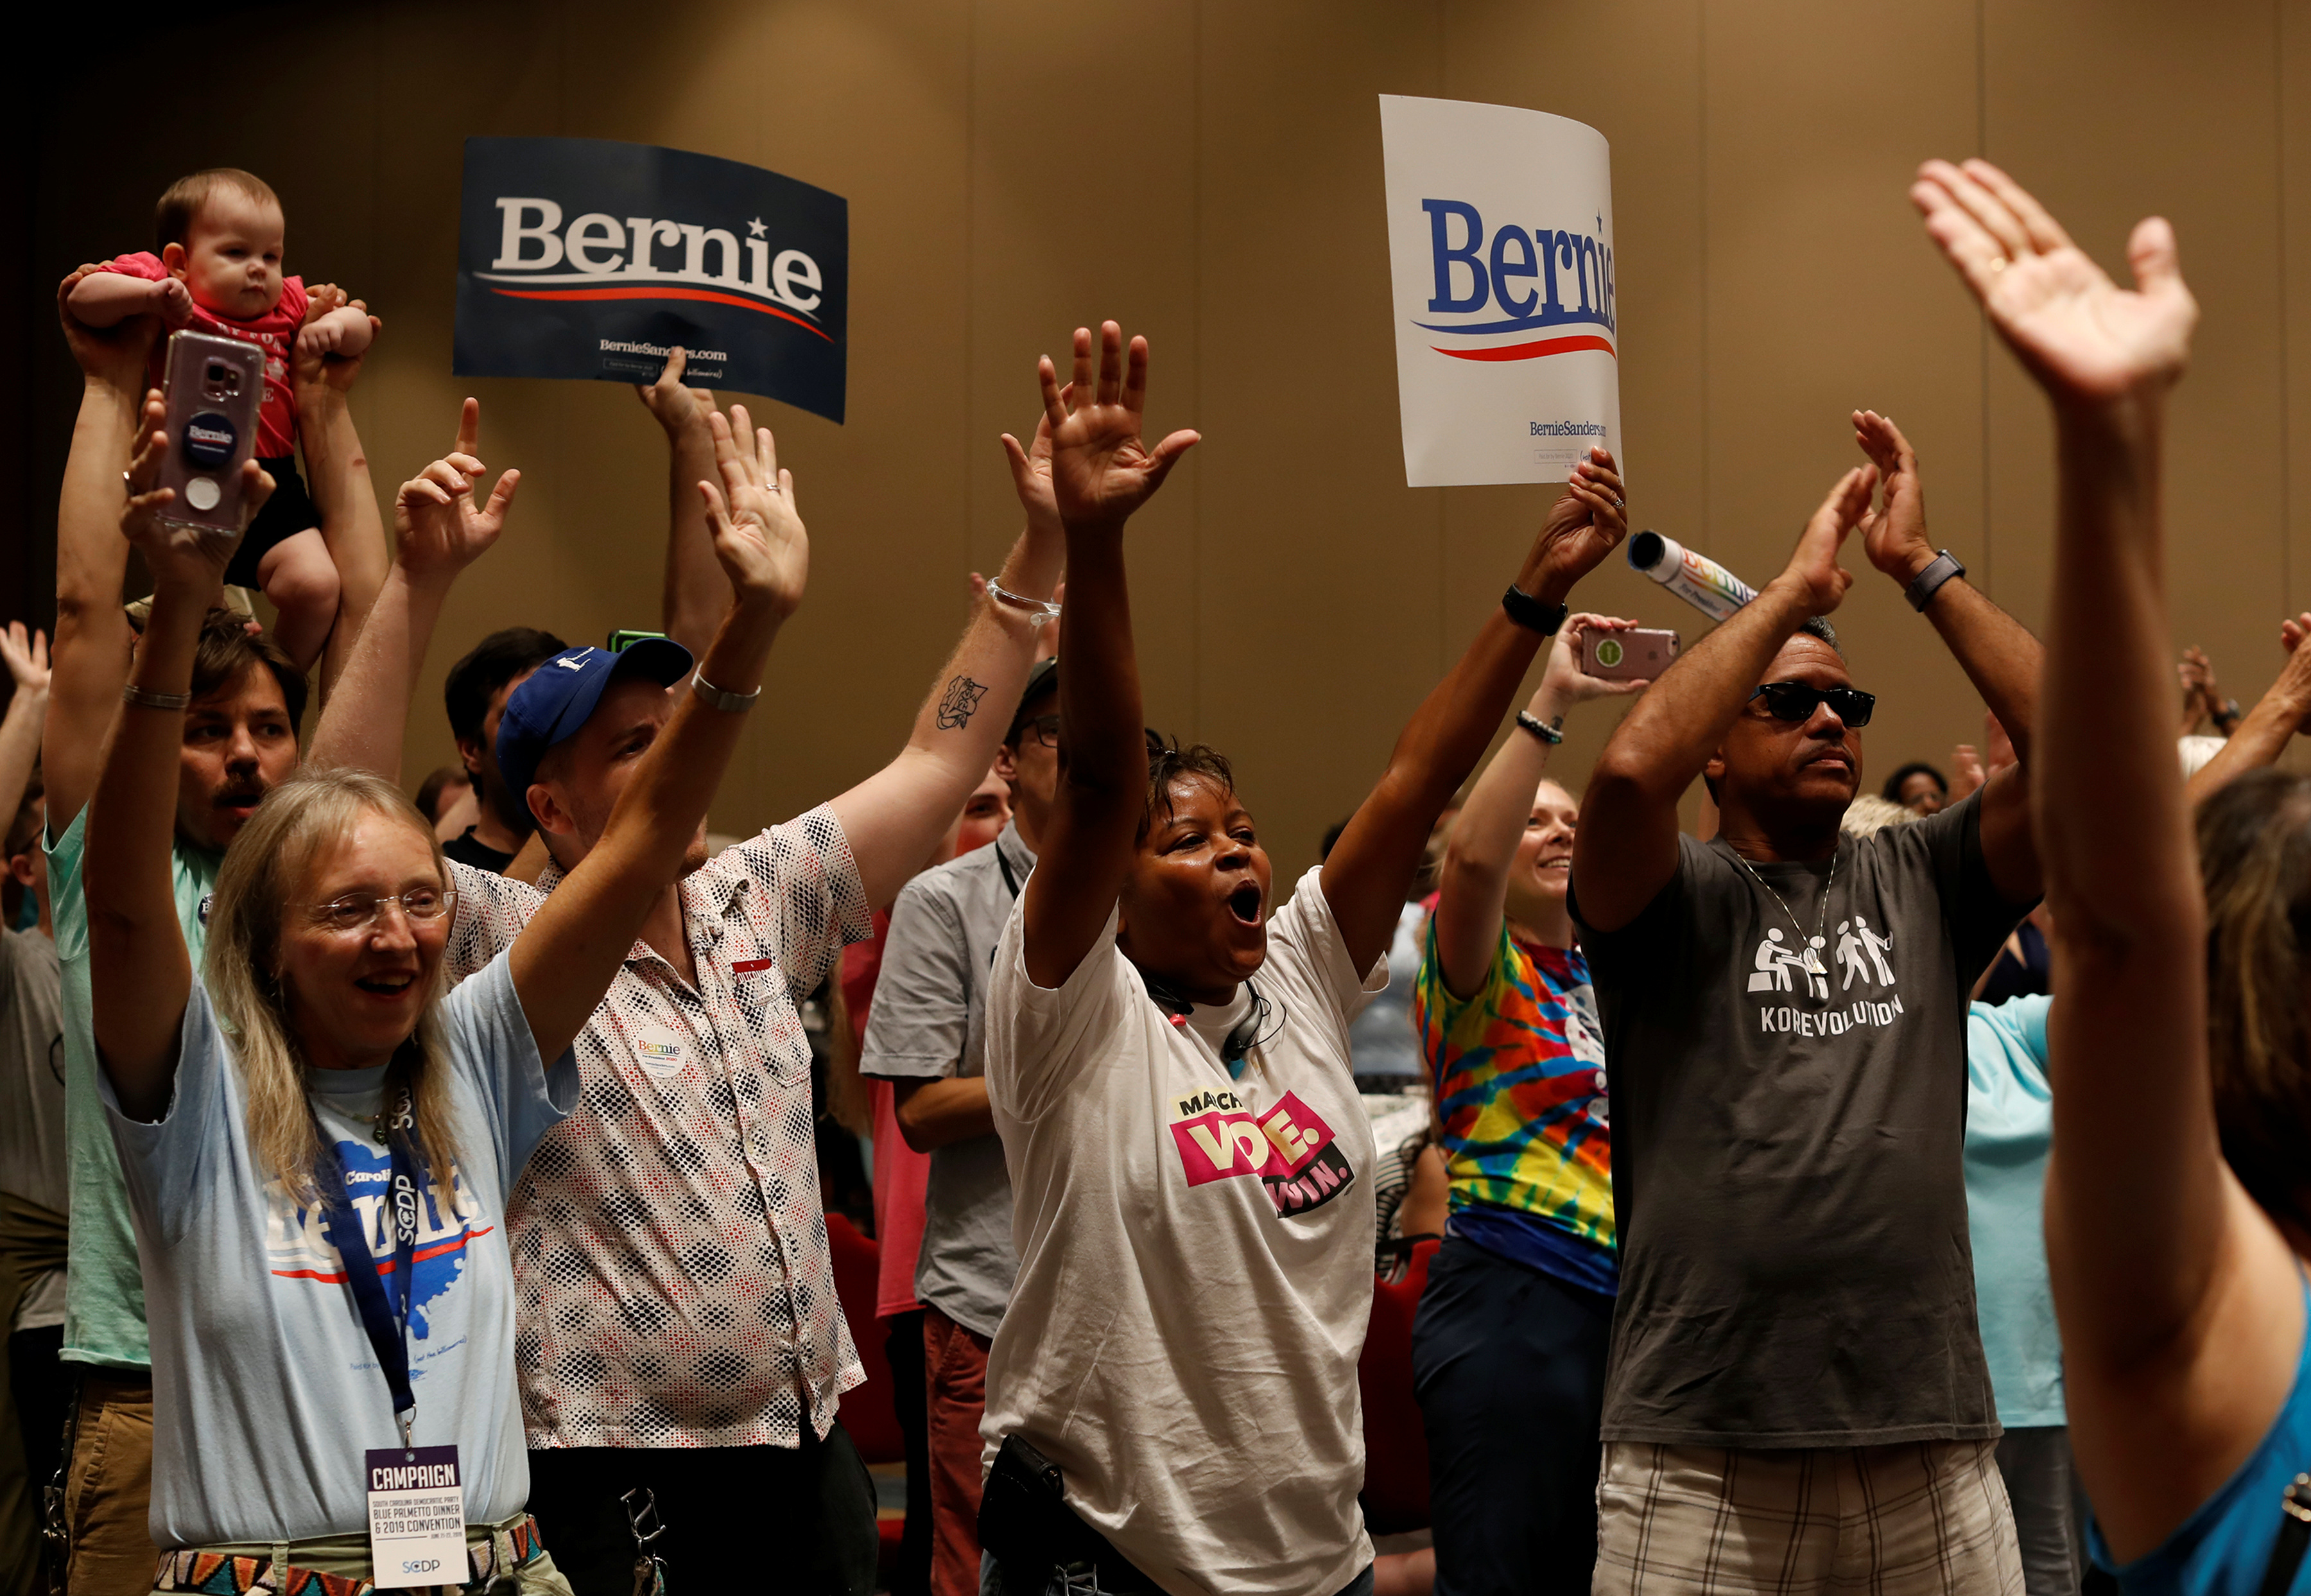 Supporters of Democratic presidential candidate Bernie Sanders hold their hands in the air during a rally for the candidate at the SC Democratic Convention in Columbia, South Carolina, U.S., June 22, 2019. REUTERS/Randall Hill